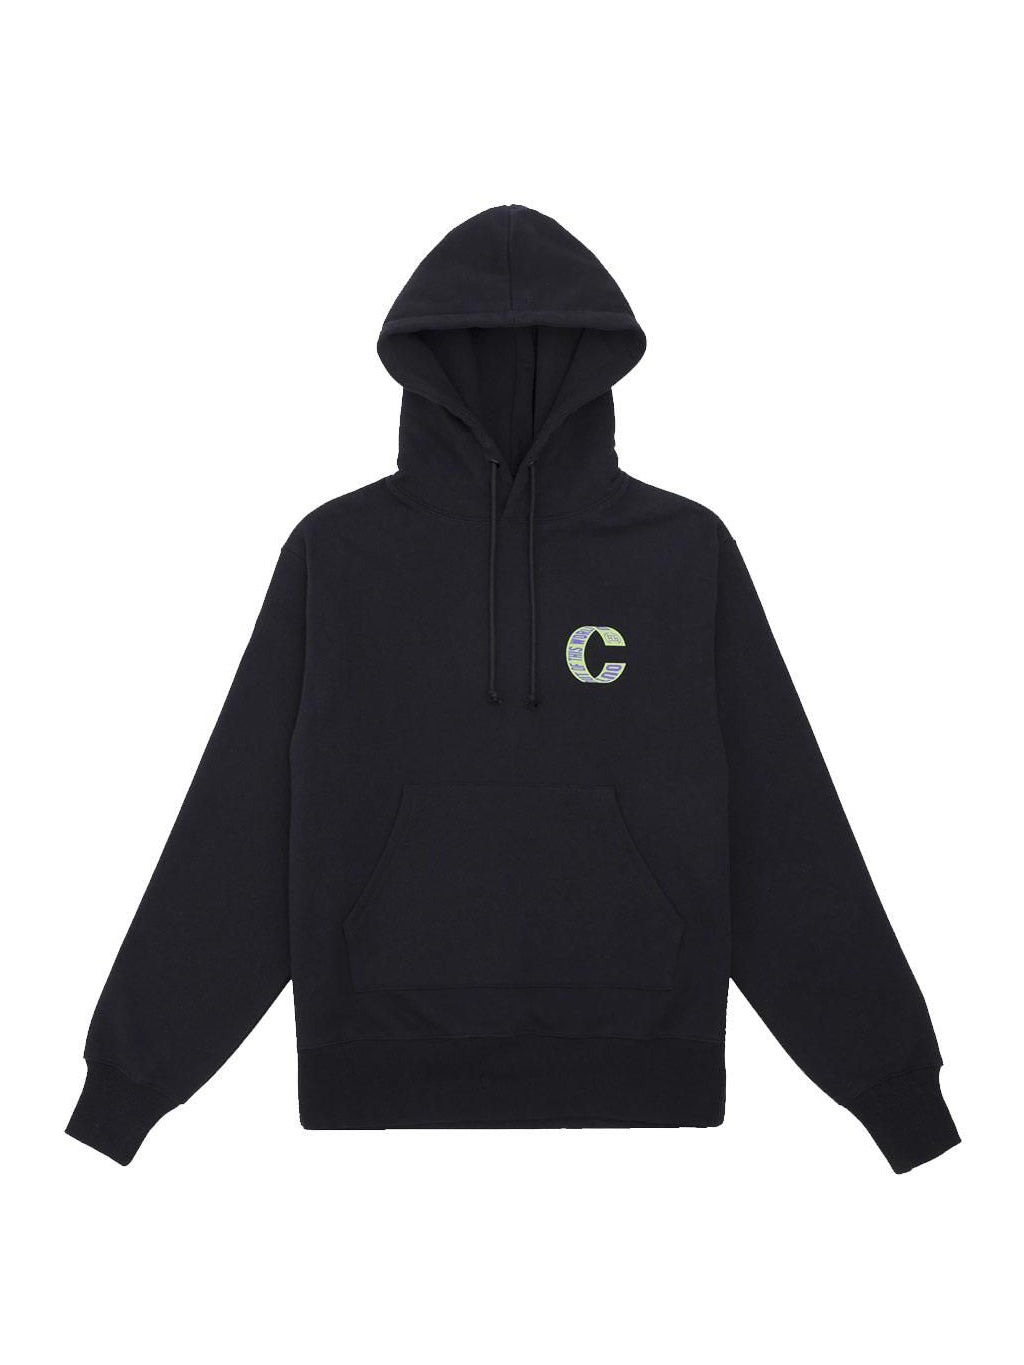 Black Out Of This World Loop Hoodie